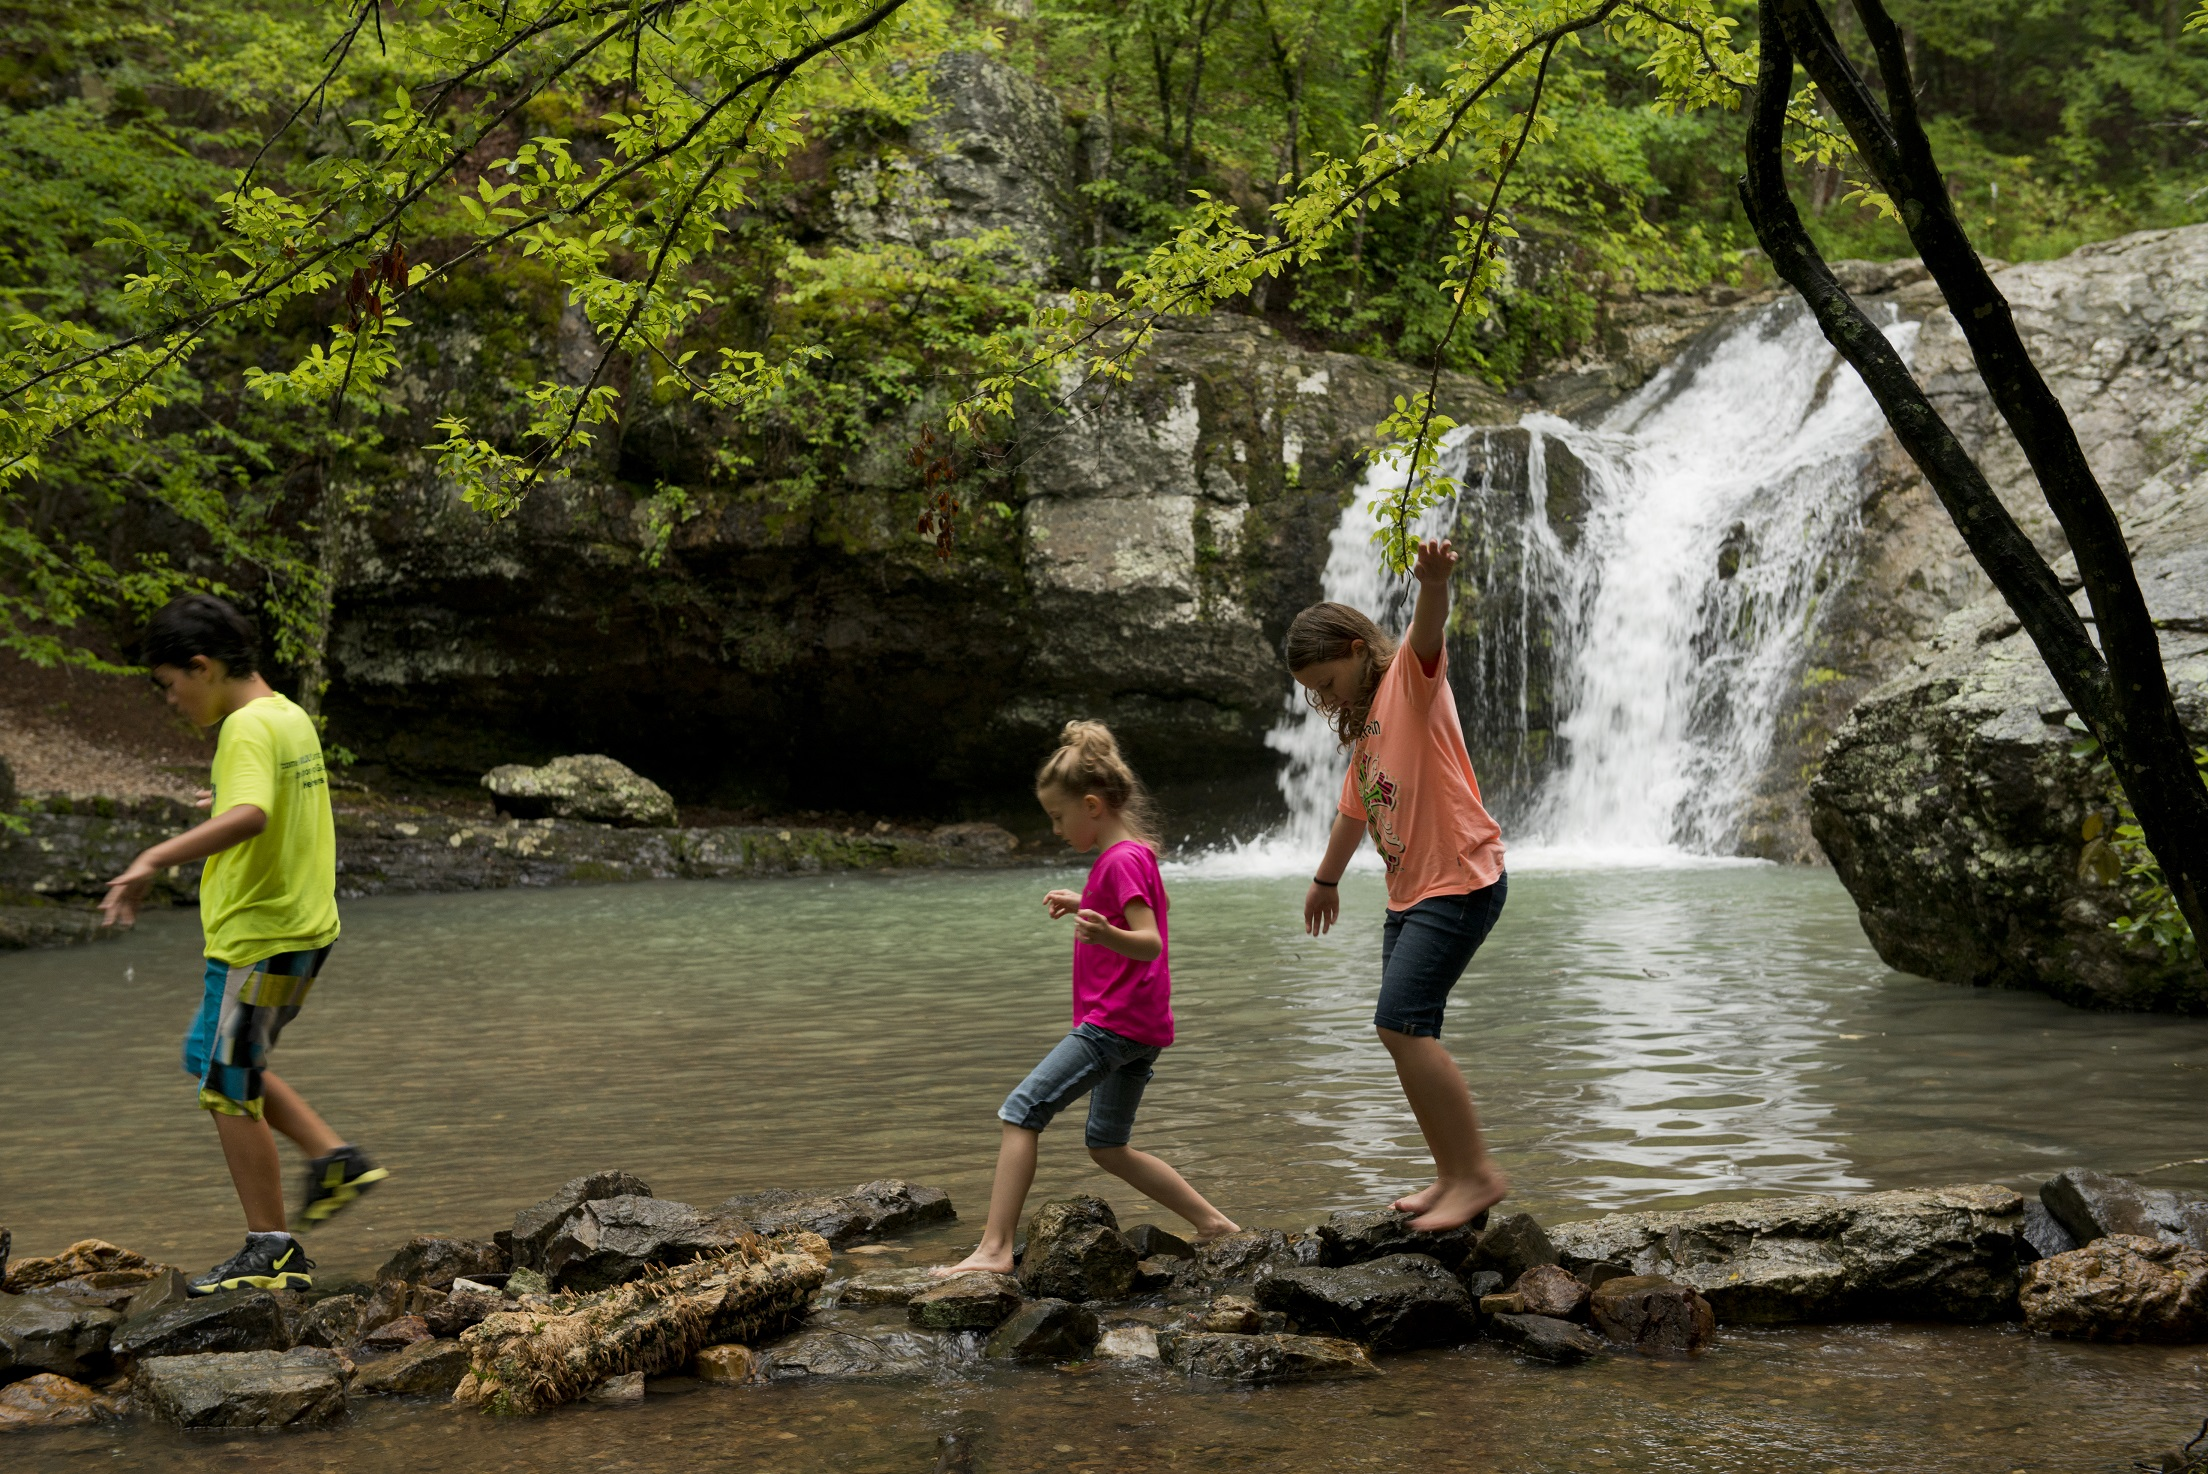 The waterfalls at Lake Catherine State Park are a popular springtime attraction.